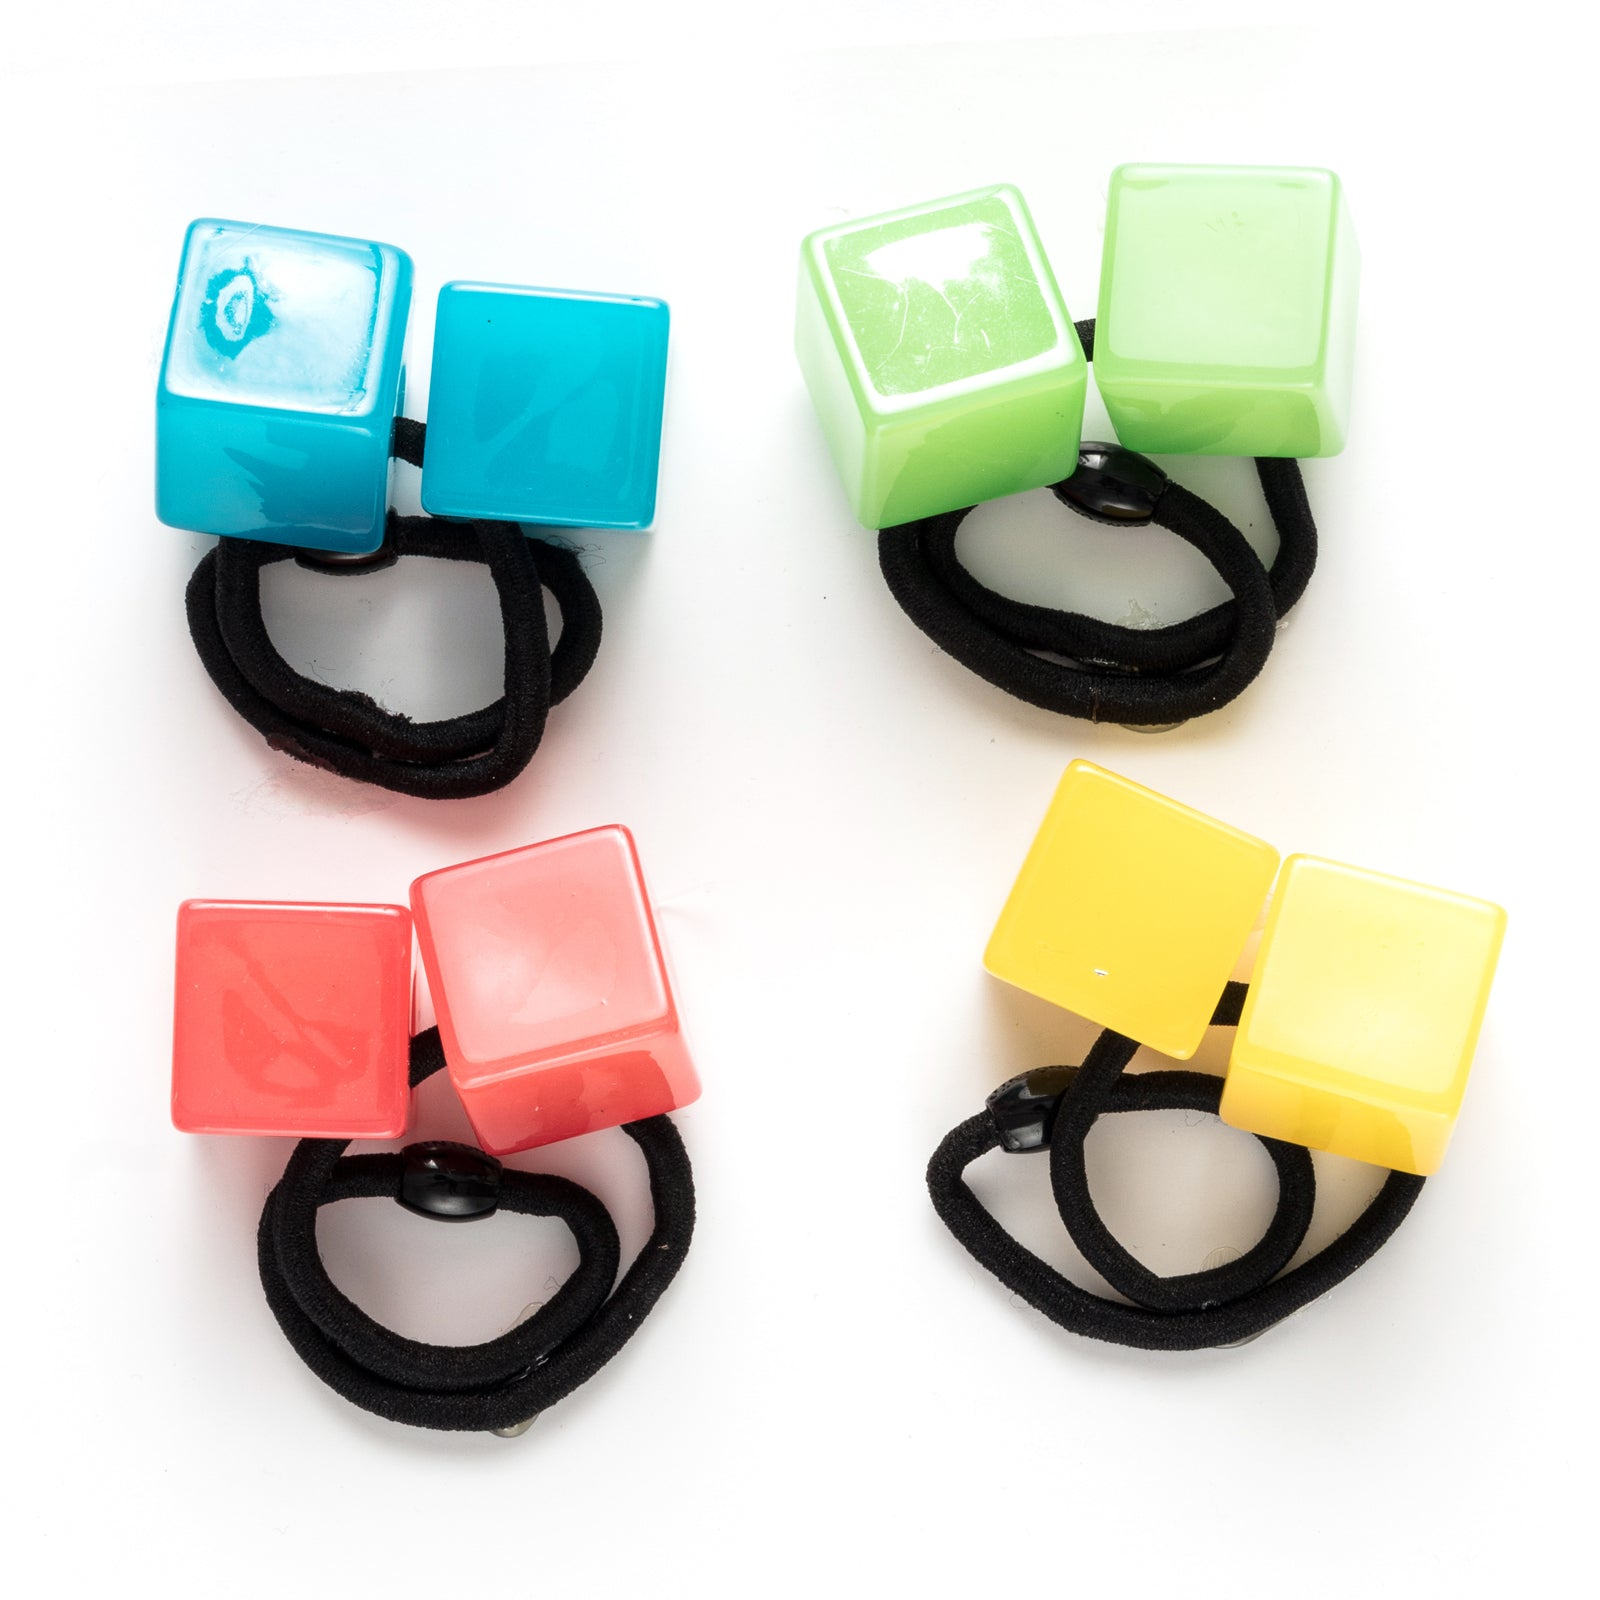 Shiny cube resin bauble hair tie